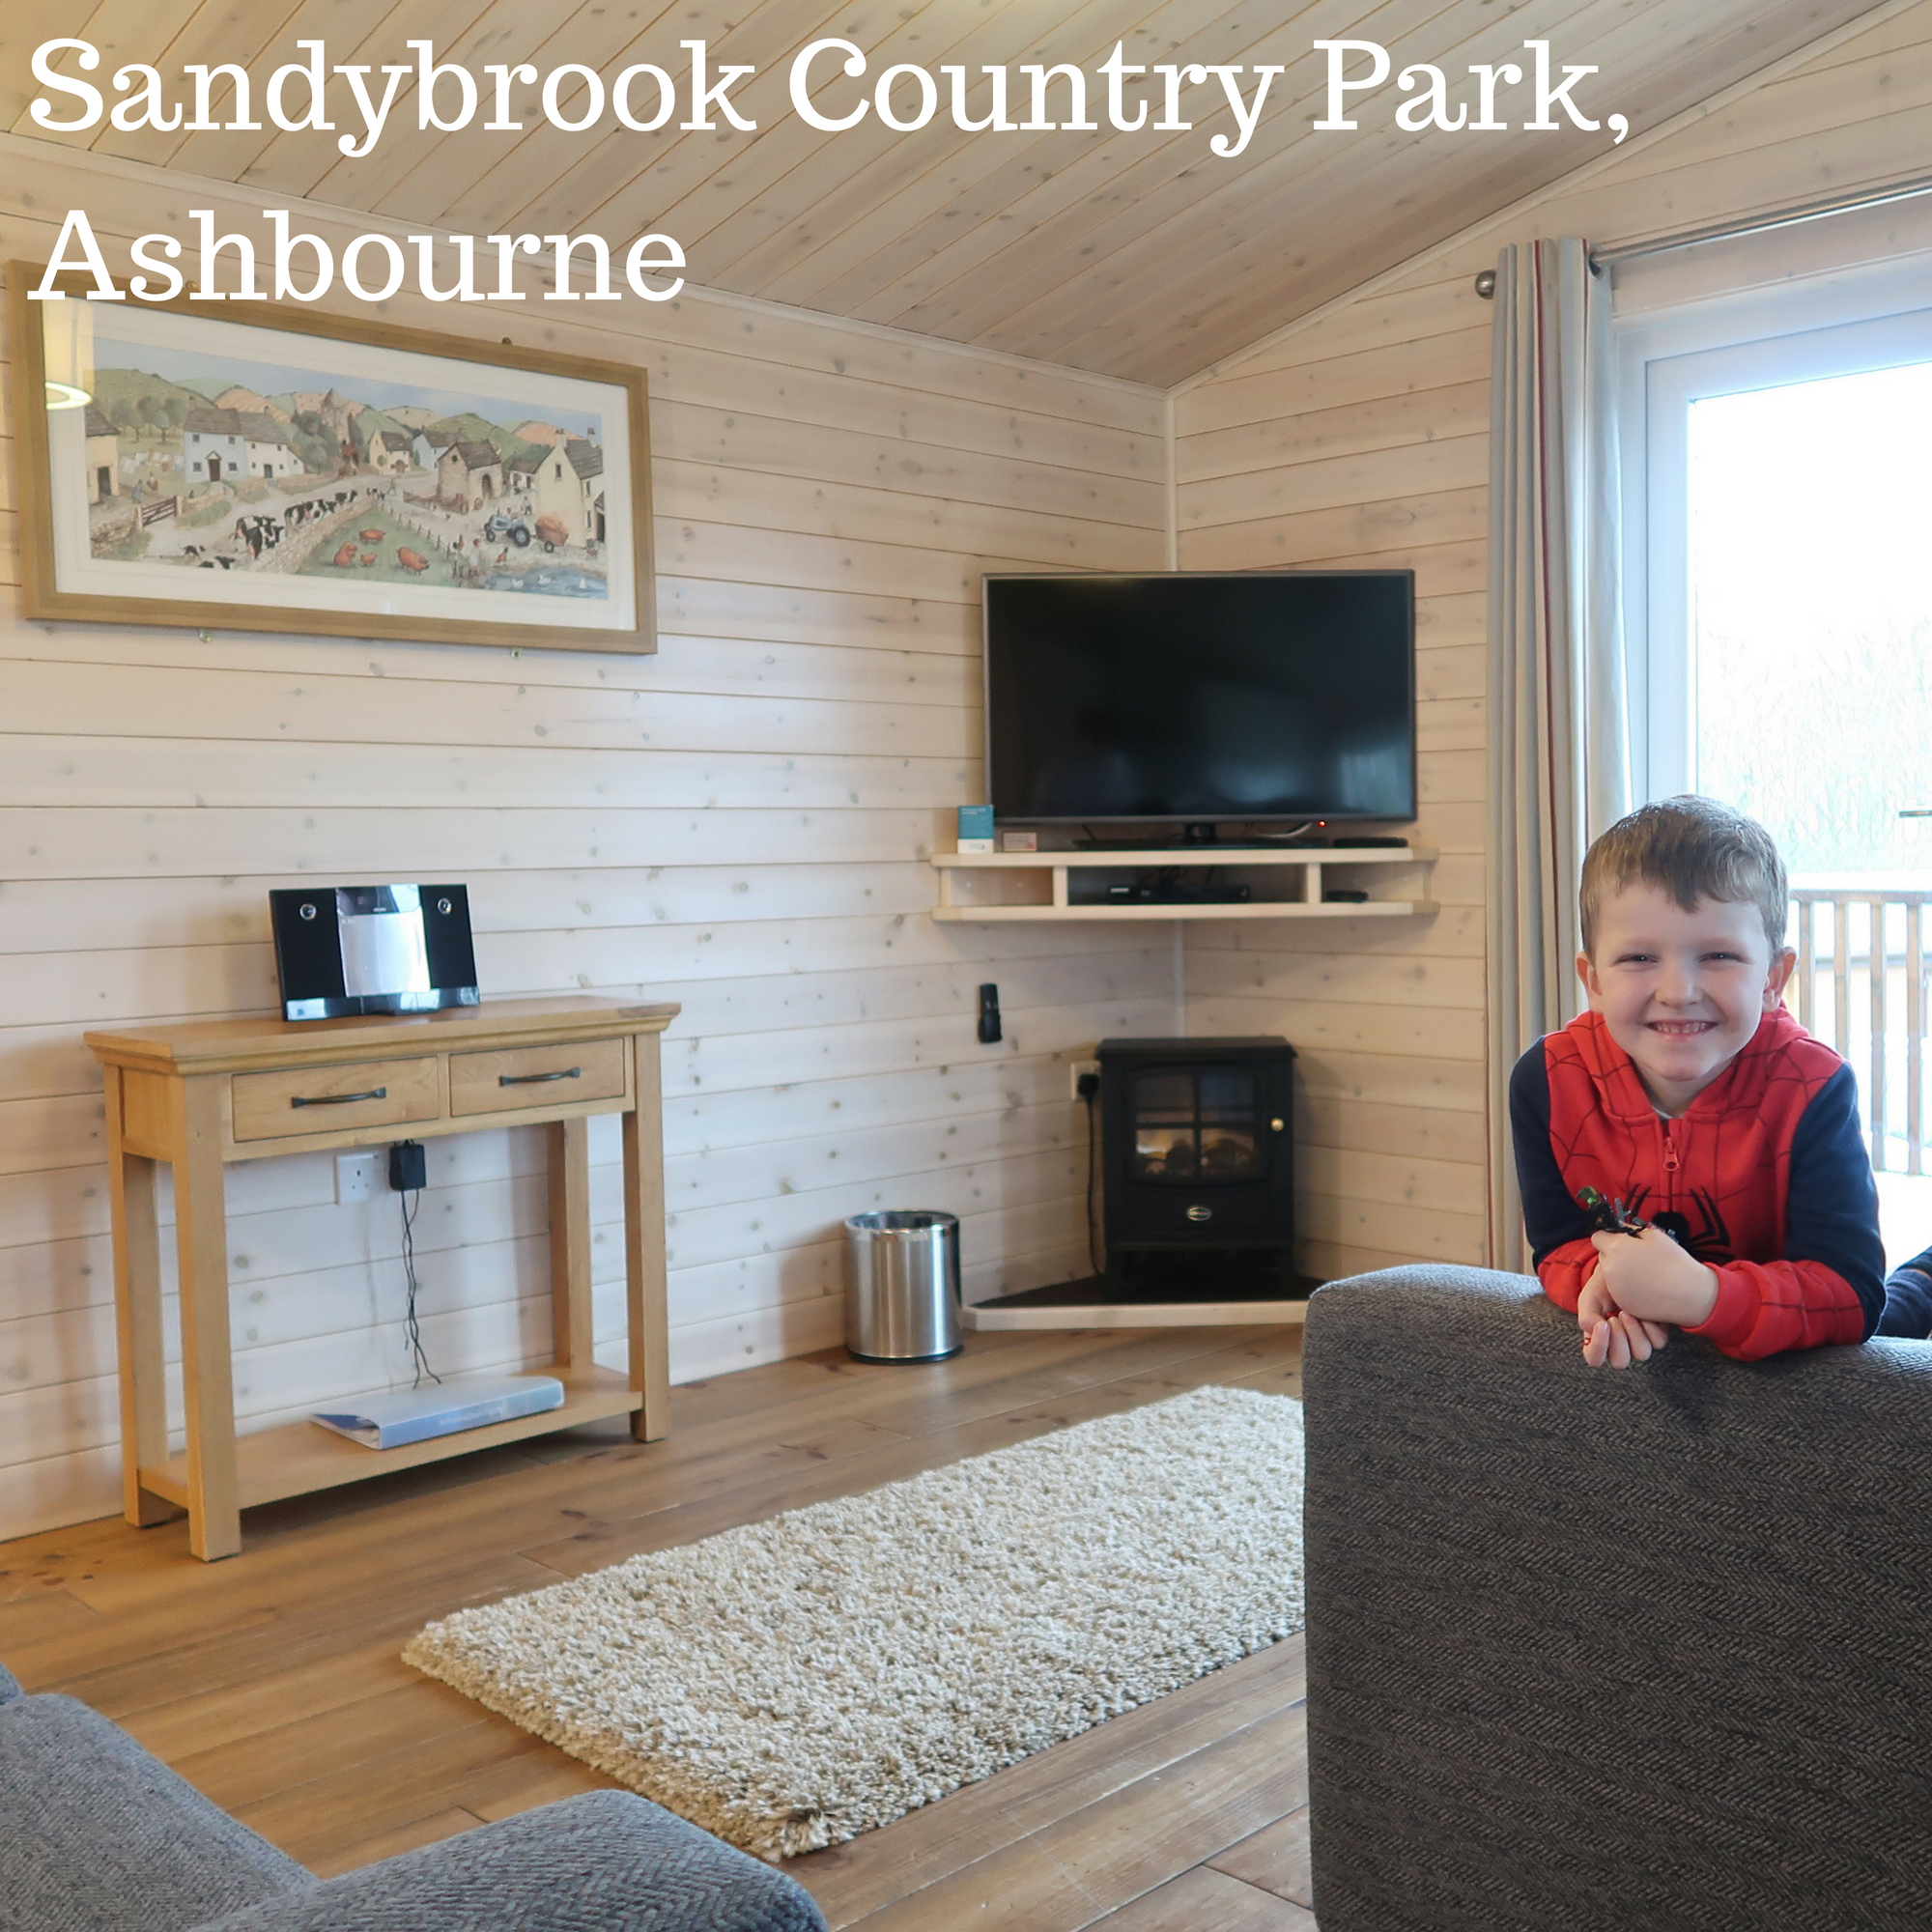 Sandybrook Country Park, Ashbourne